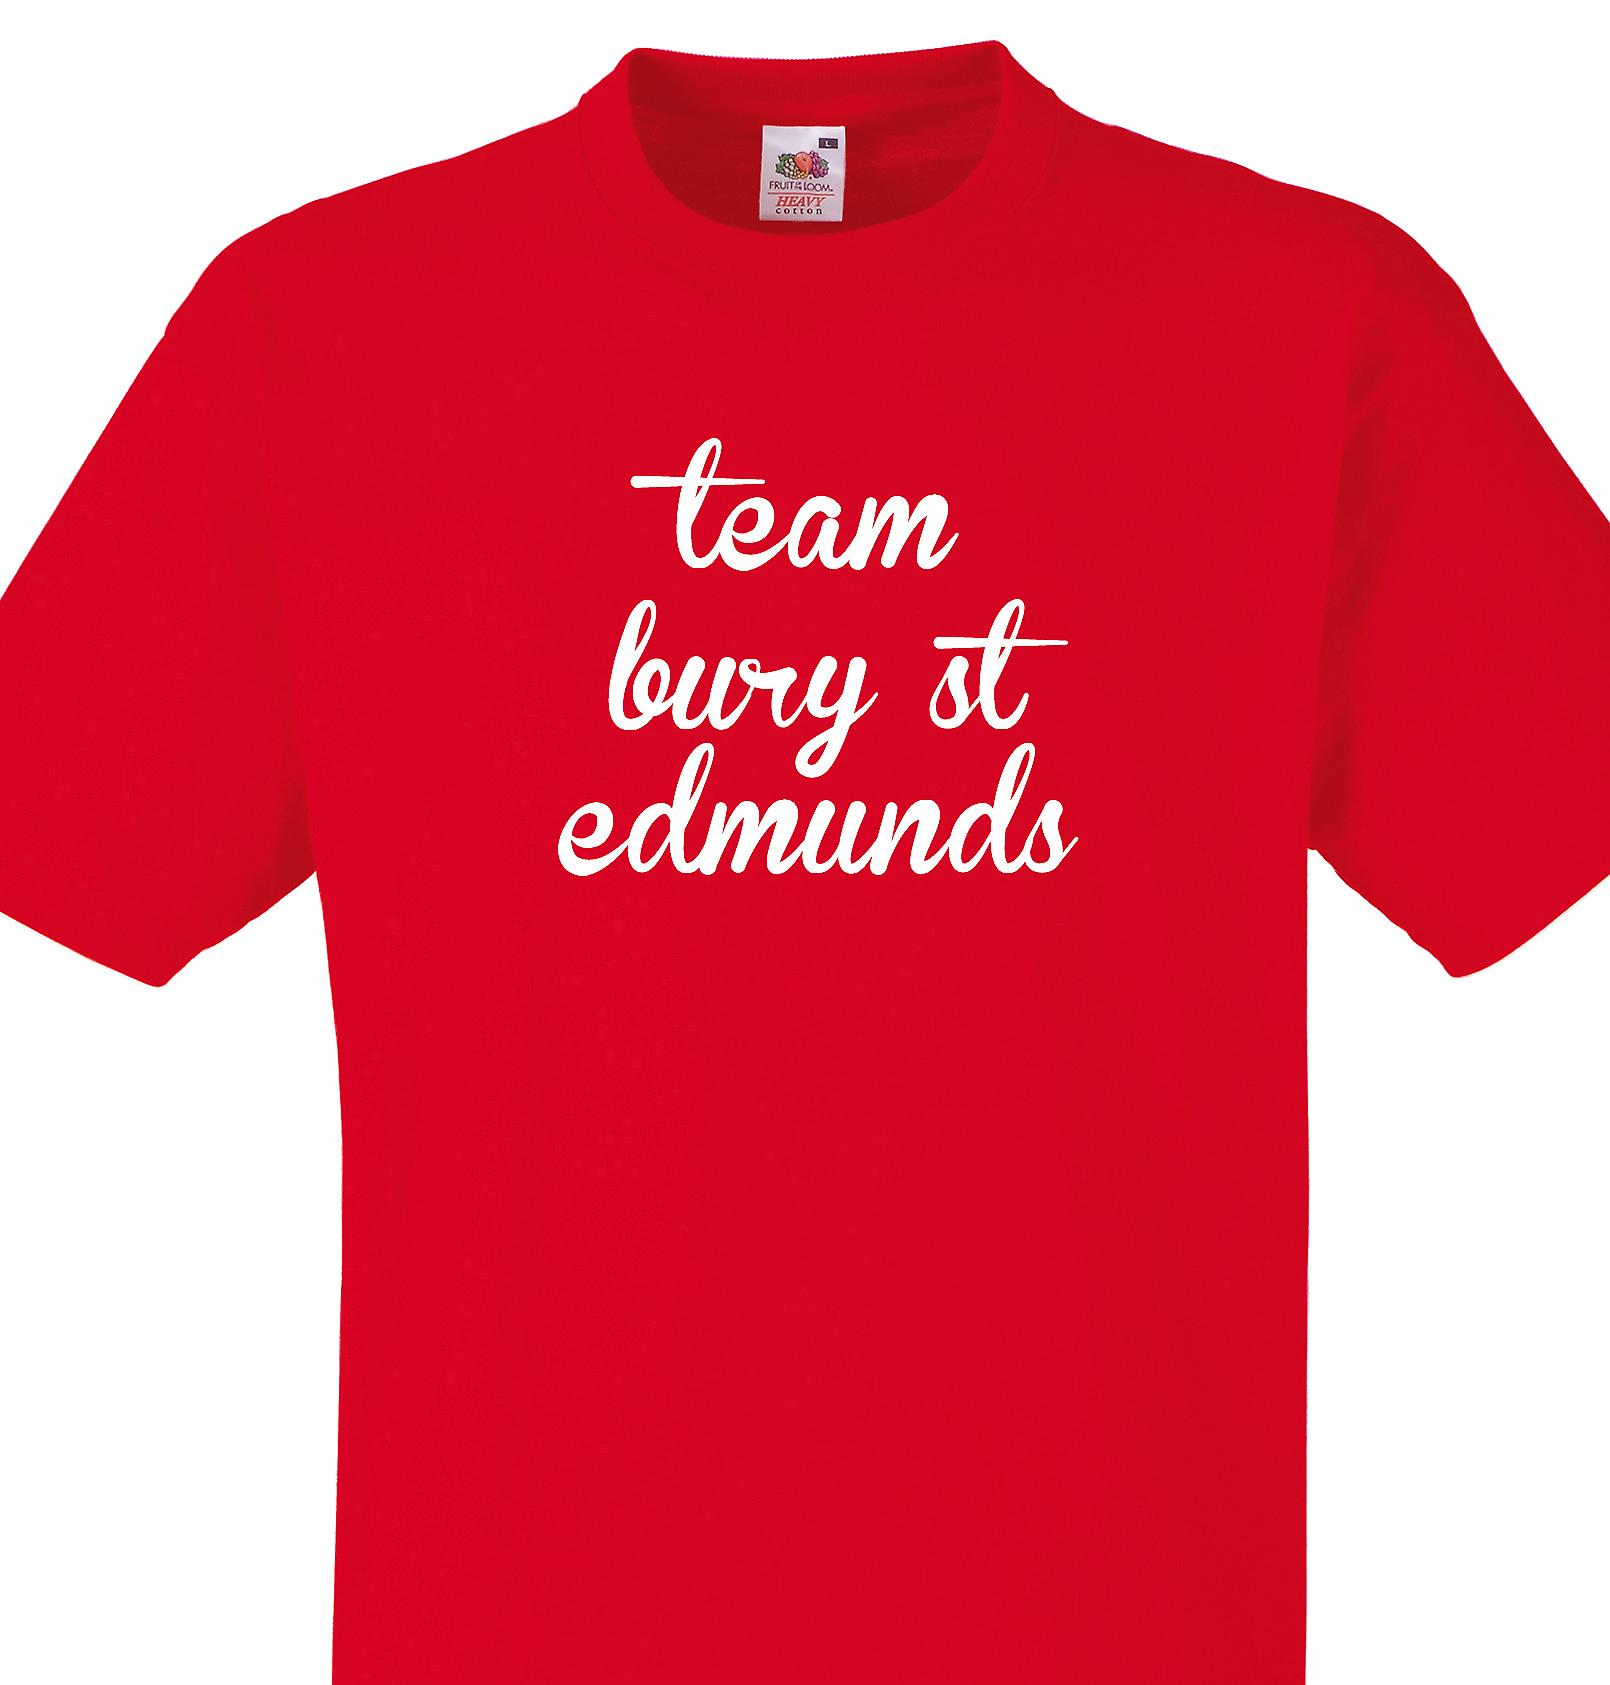 Team Bury st edmunds Red T shirt